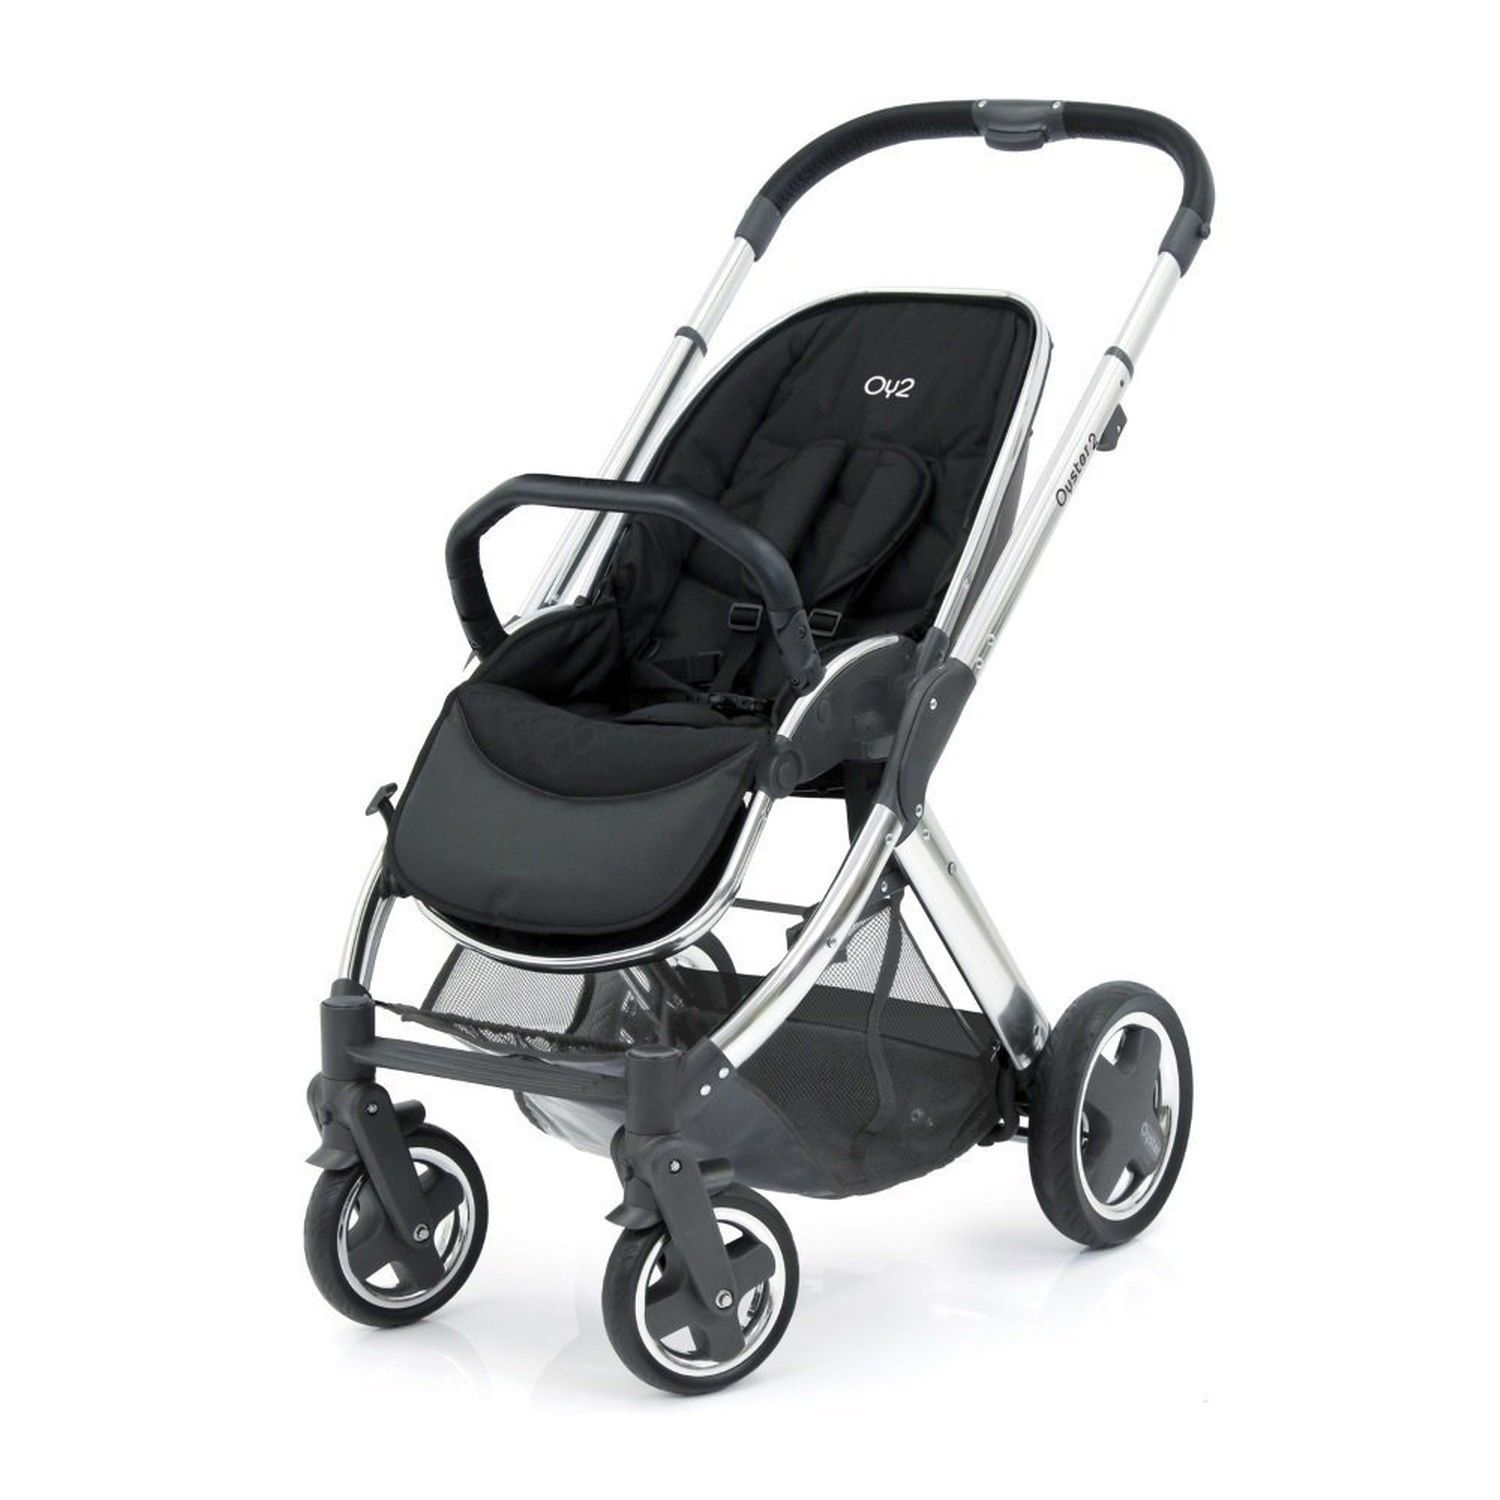 Oyster Double Pram Mothercare Oyster 2 Chassis Mirror Black Leather Products In 2019